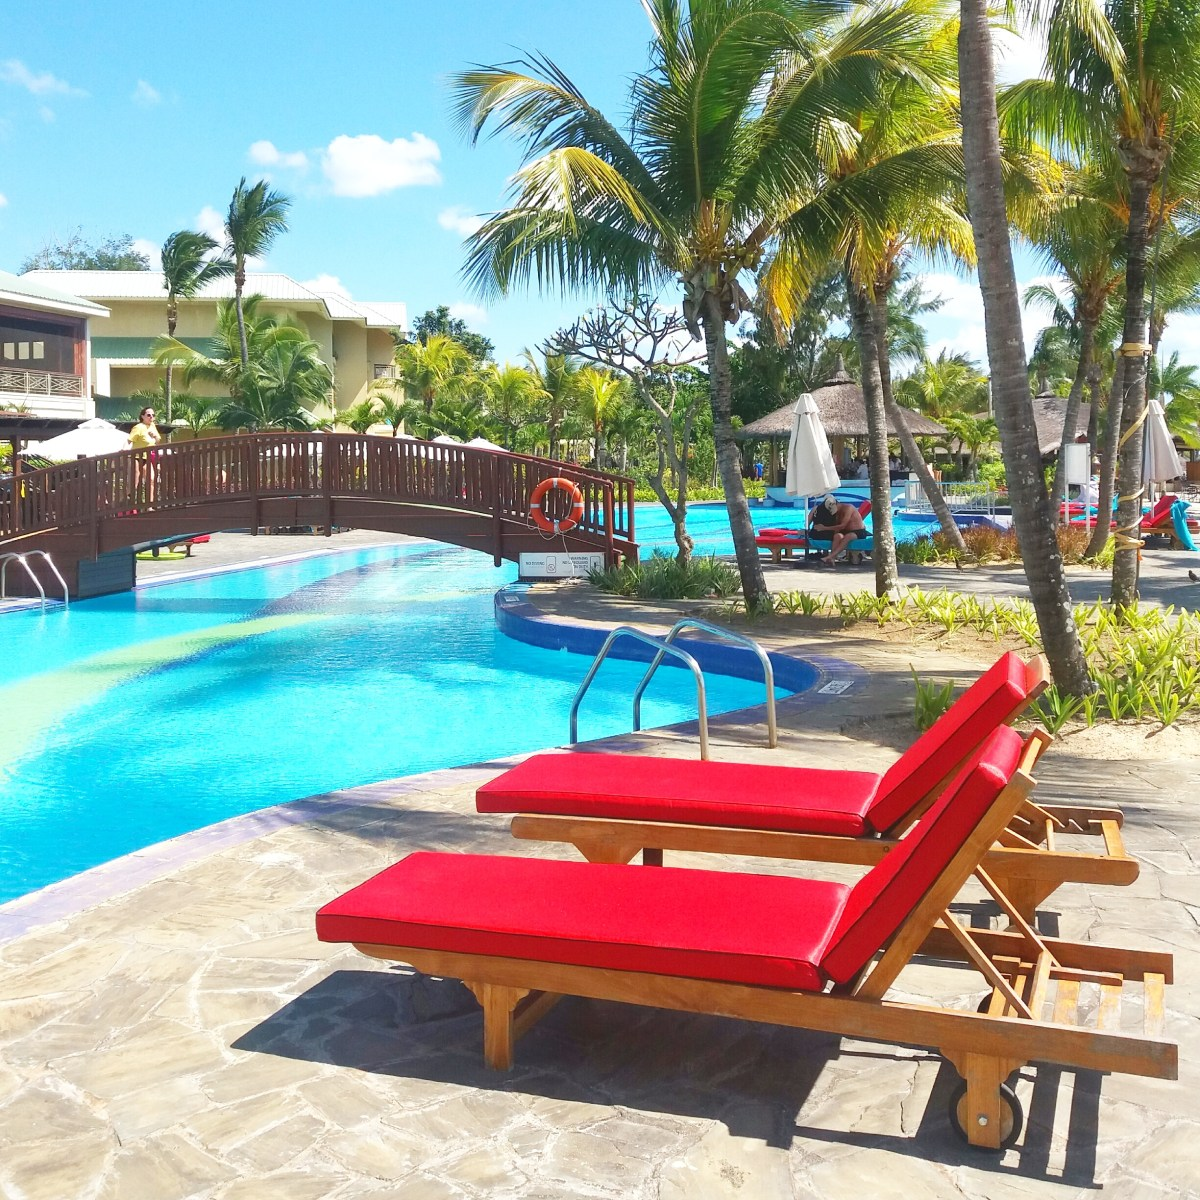 Staying at Le Meridien ile Maurice